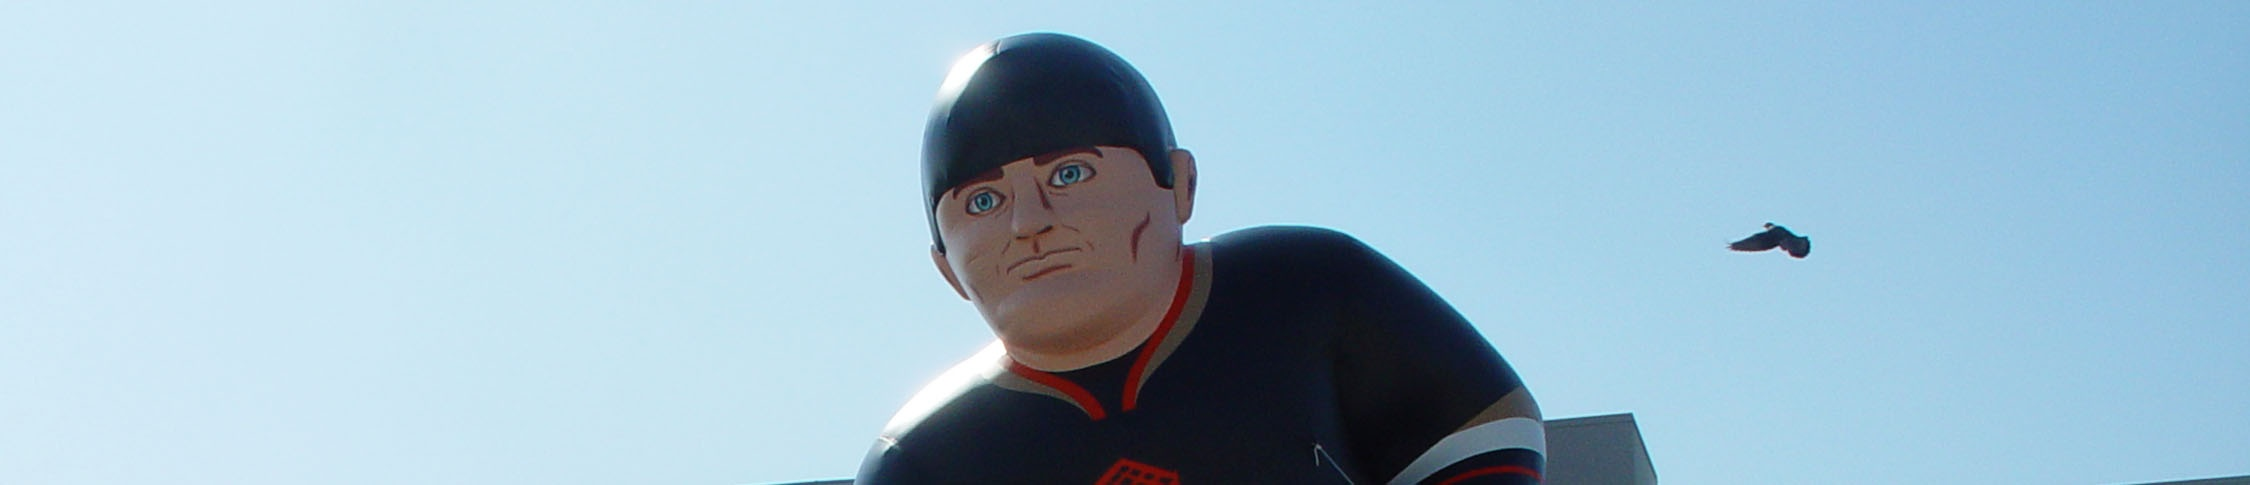 giant-inflatable-hockey-player-pigeon.jpg